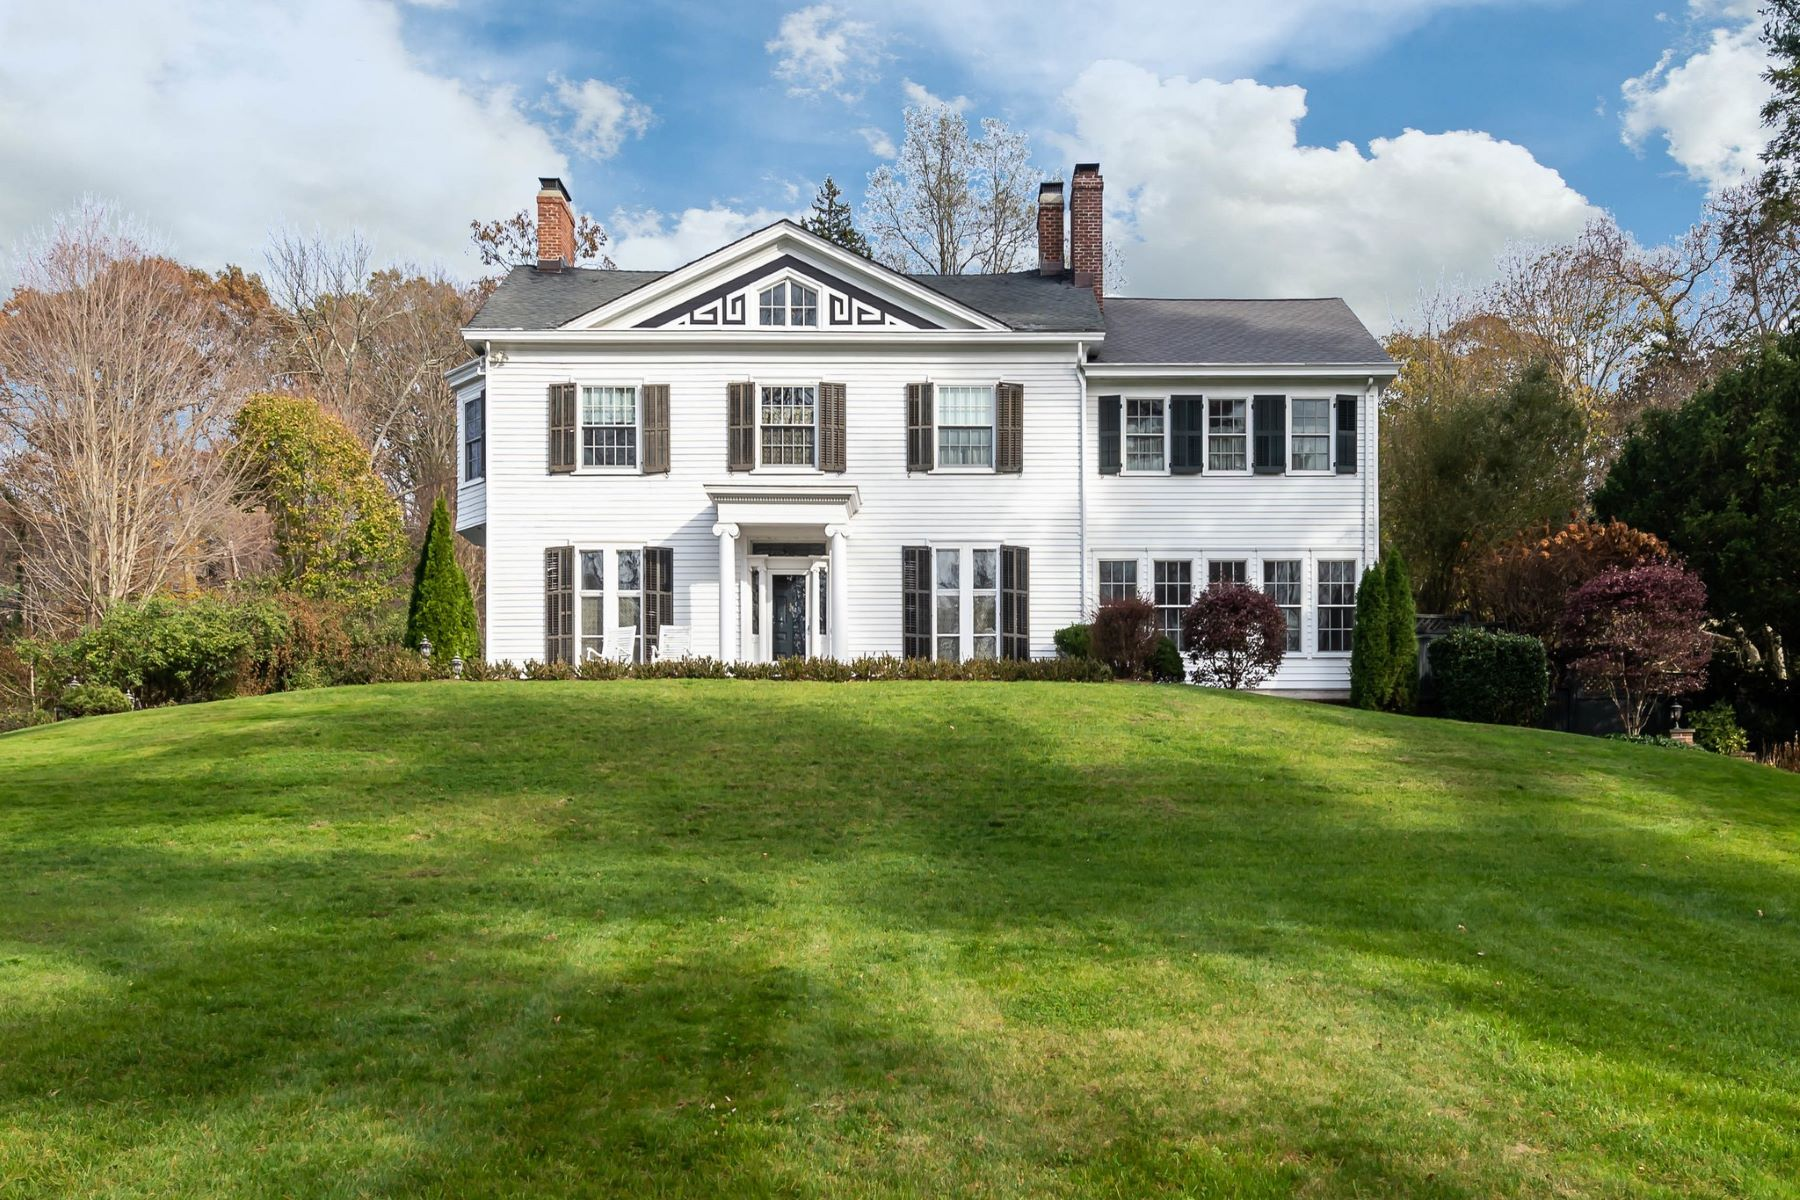 Single Family Homes for Sale at Oyster Bay Cove 197 Cove Road Oyster Bay Cove, New York 11771 United States